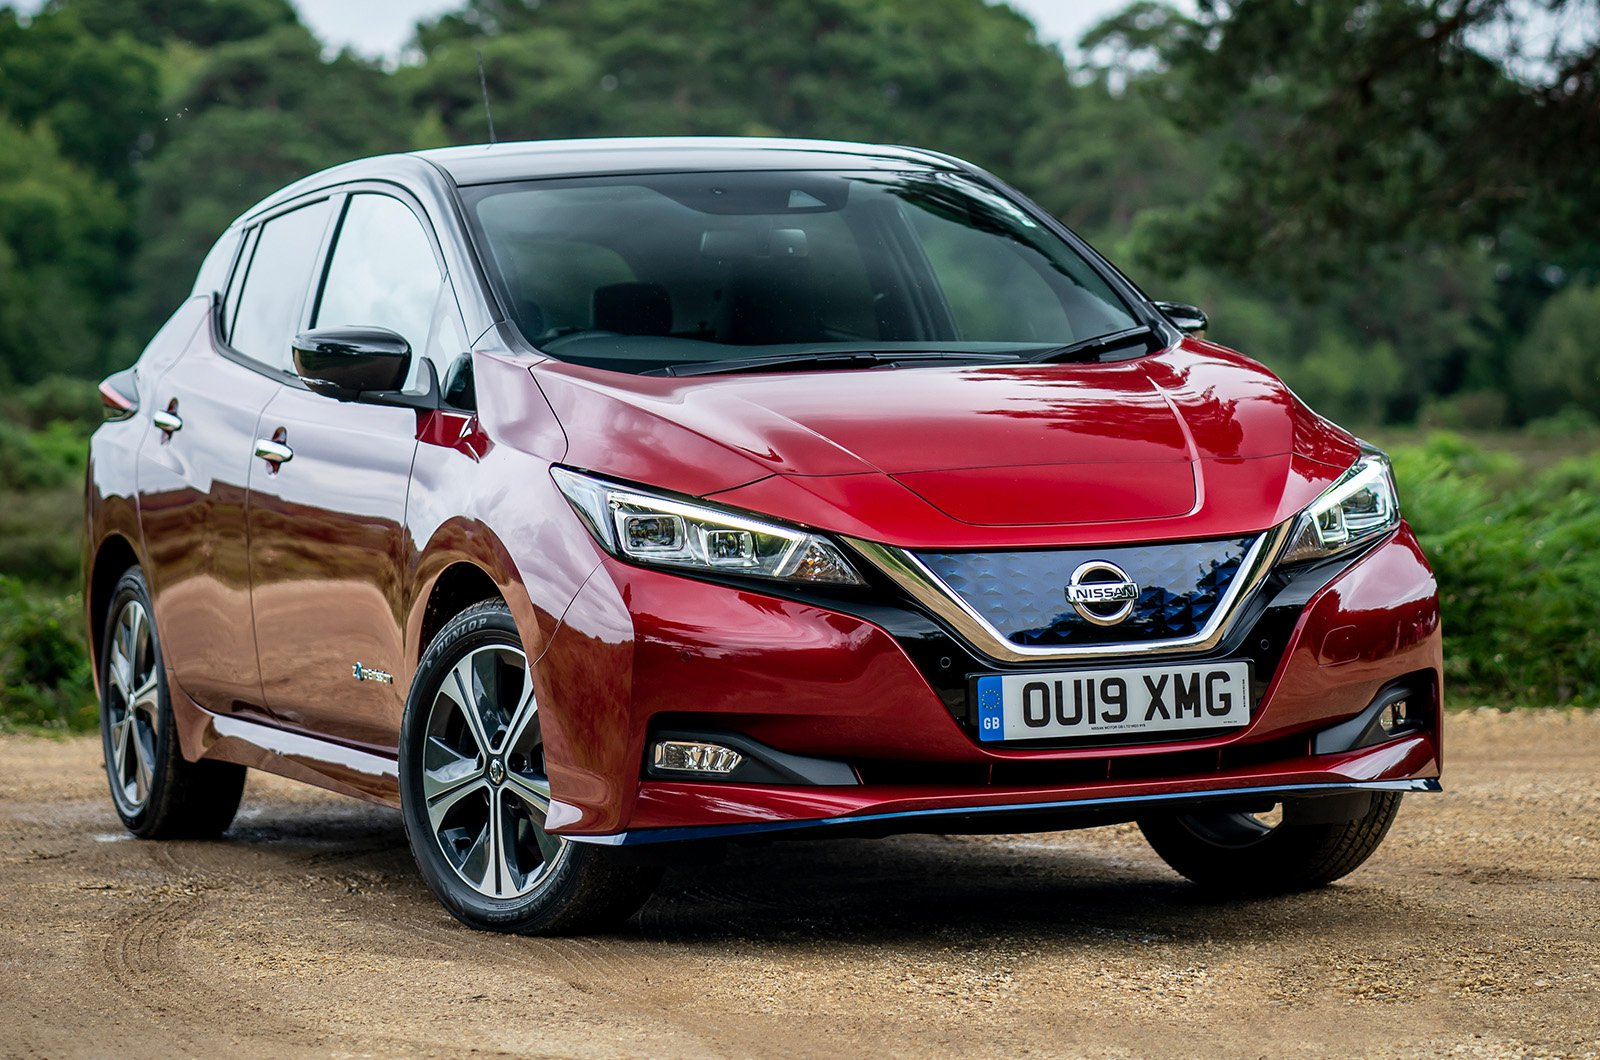 With impressively practical range, refined comfort, helpful driving aids and a well-developed charging network, going electric is perfect for fleet drivers